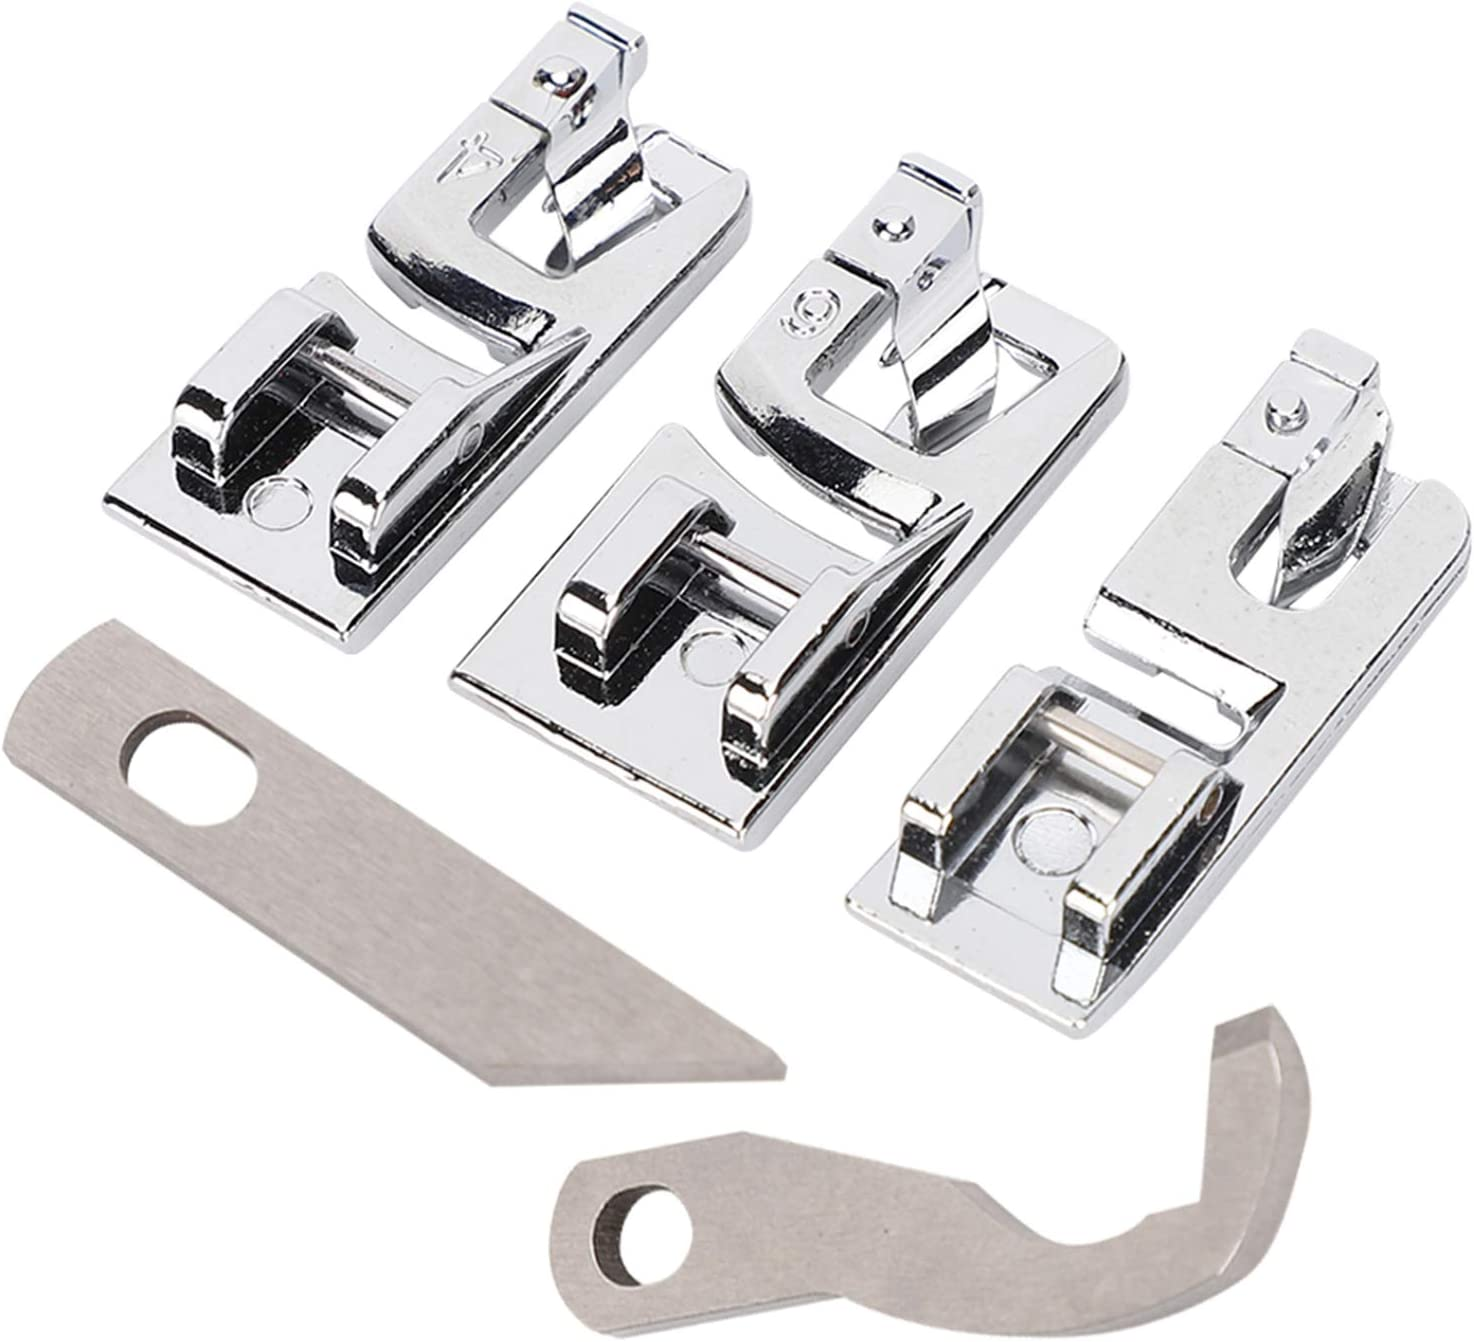 Rolled Hem Foot Presser Steel Stainless R Ranking TOP6 Set New product